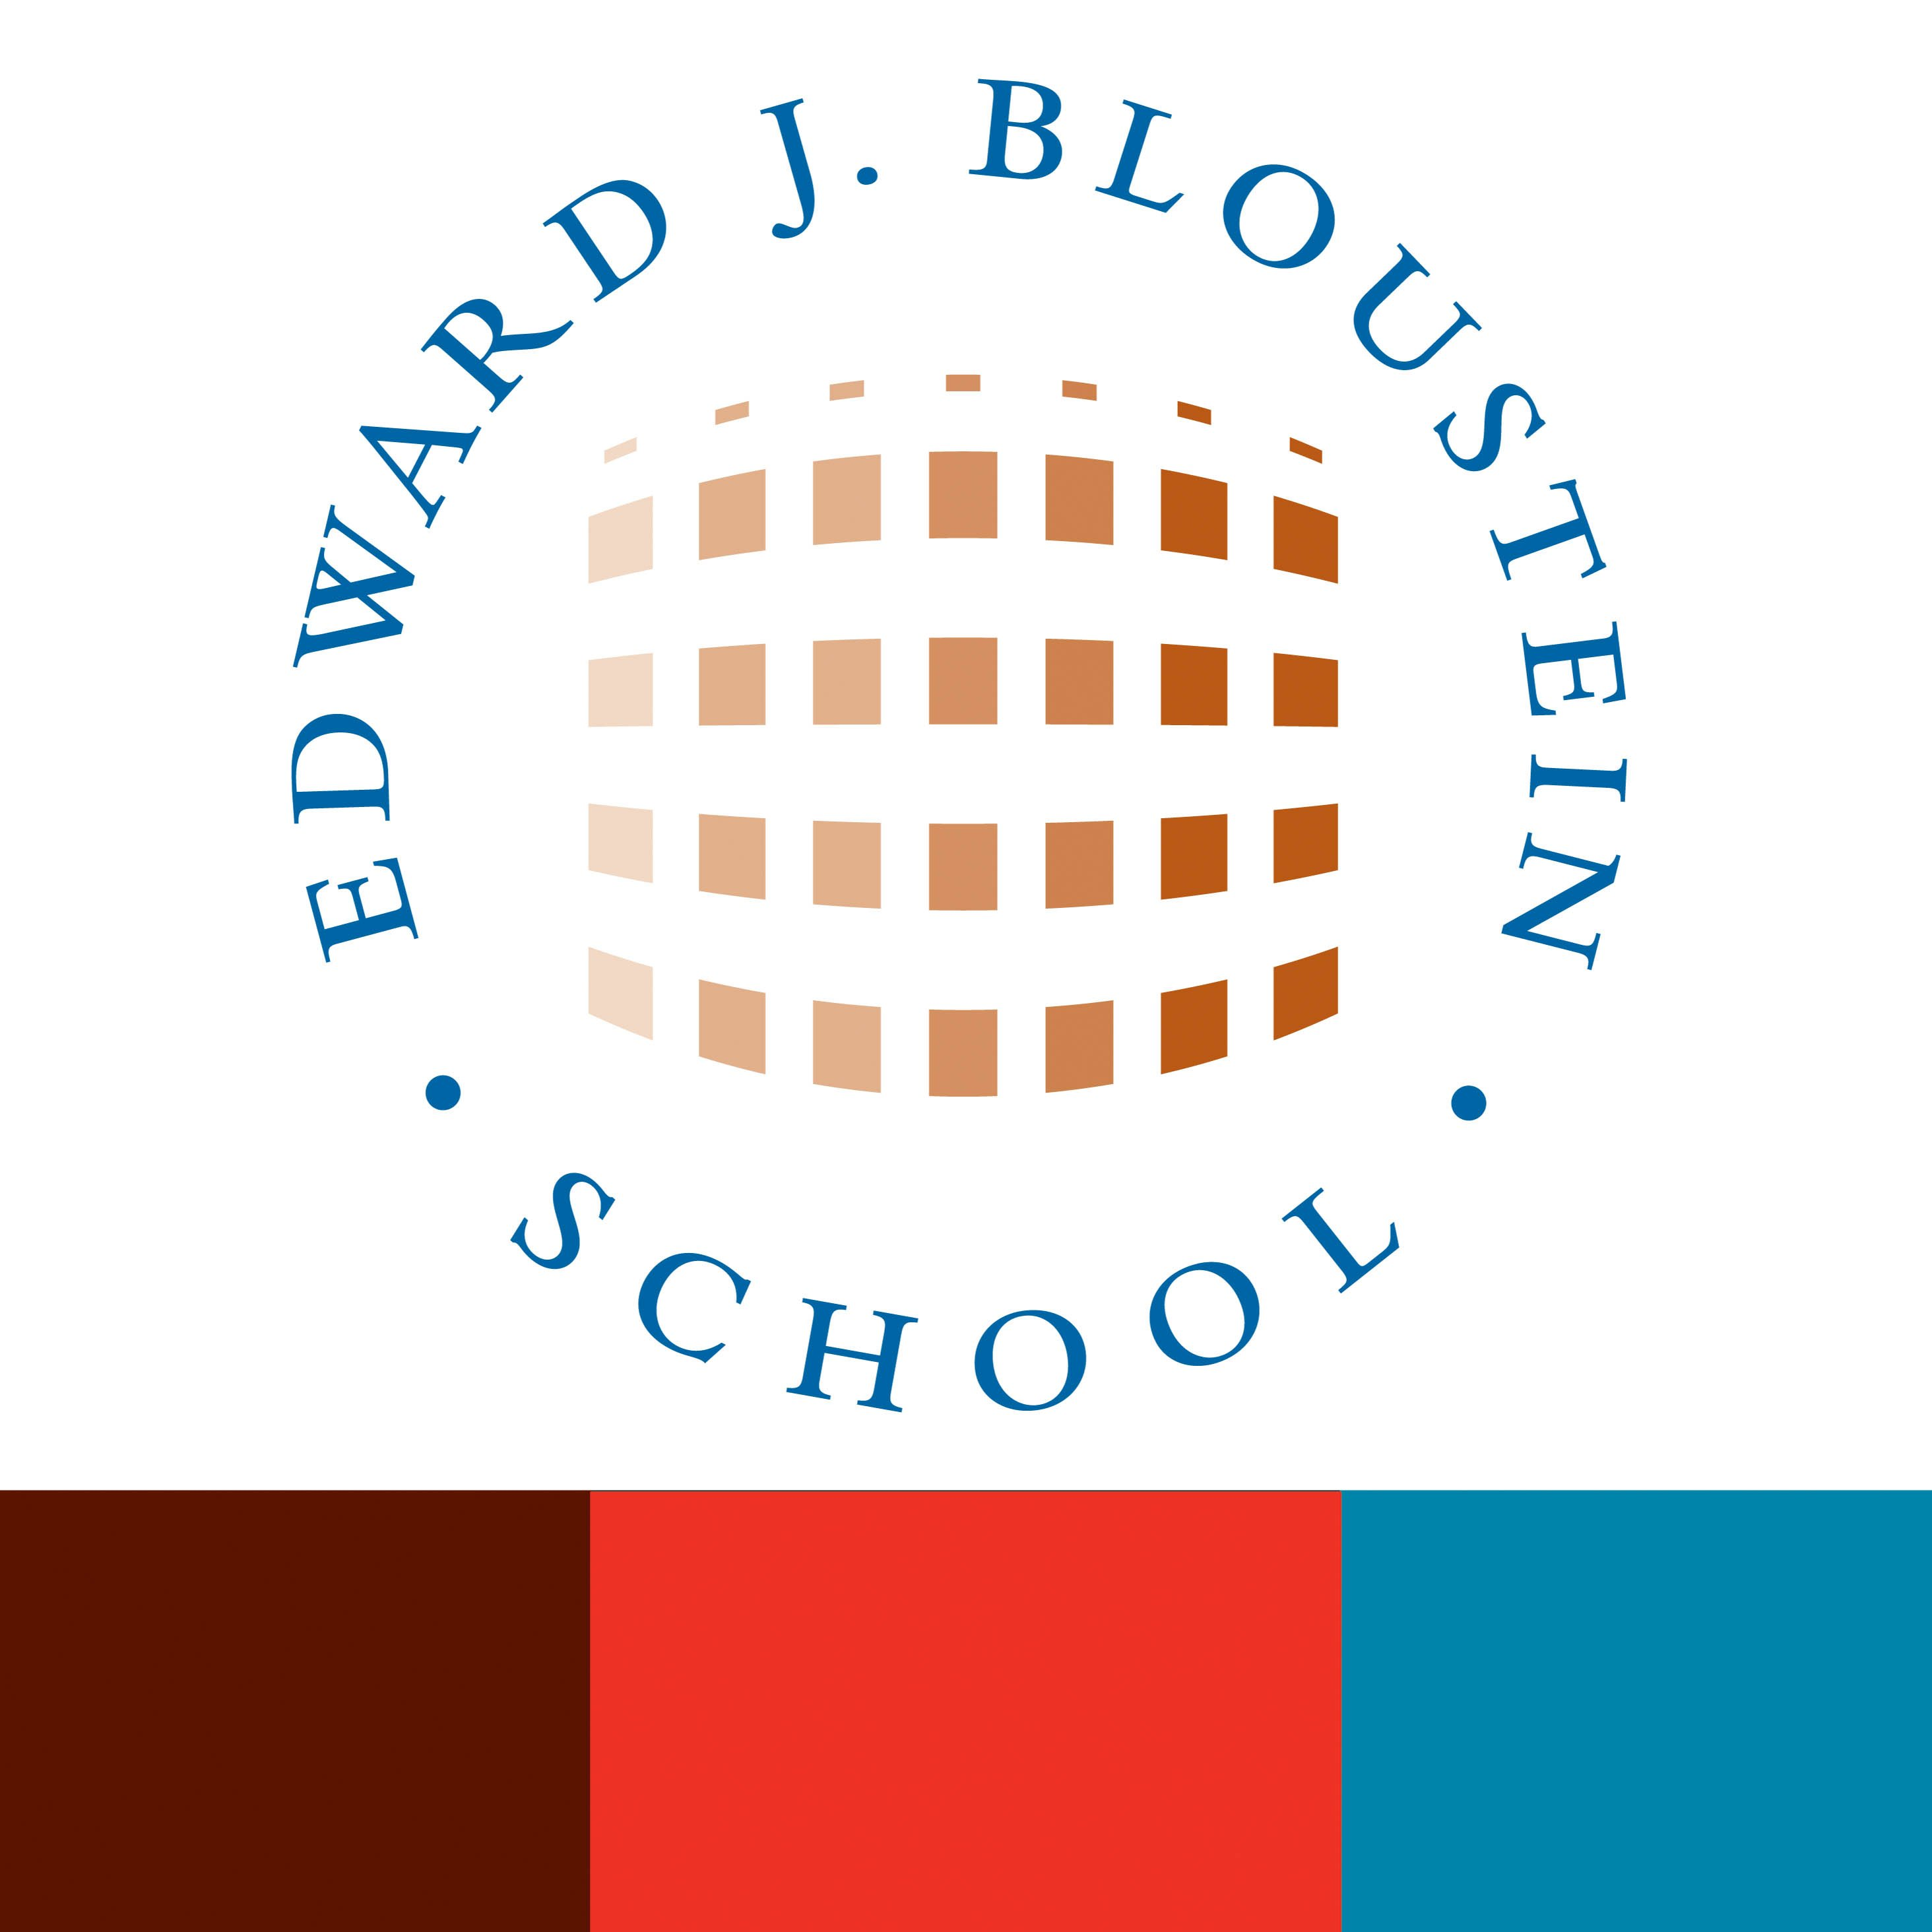 Edward J Bloustein School of Planning & Public Policy